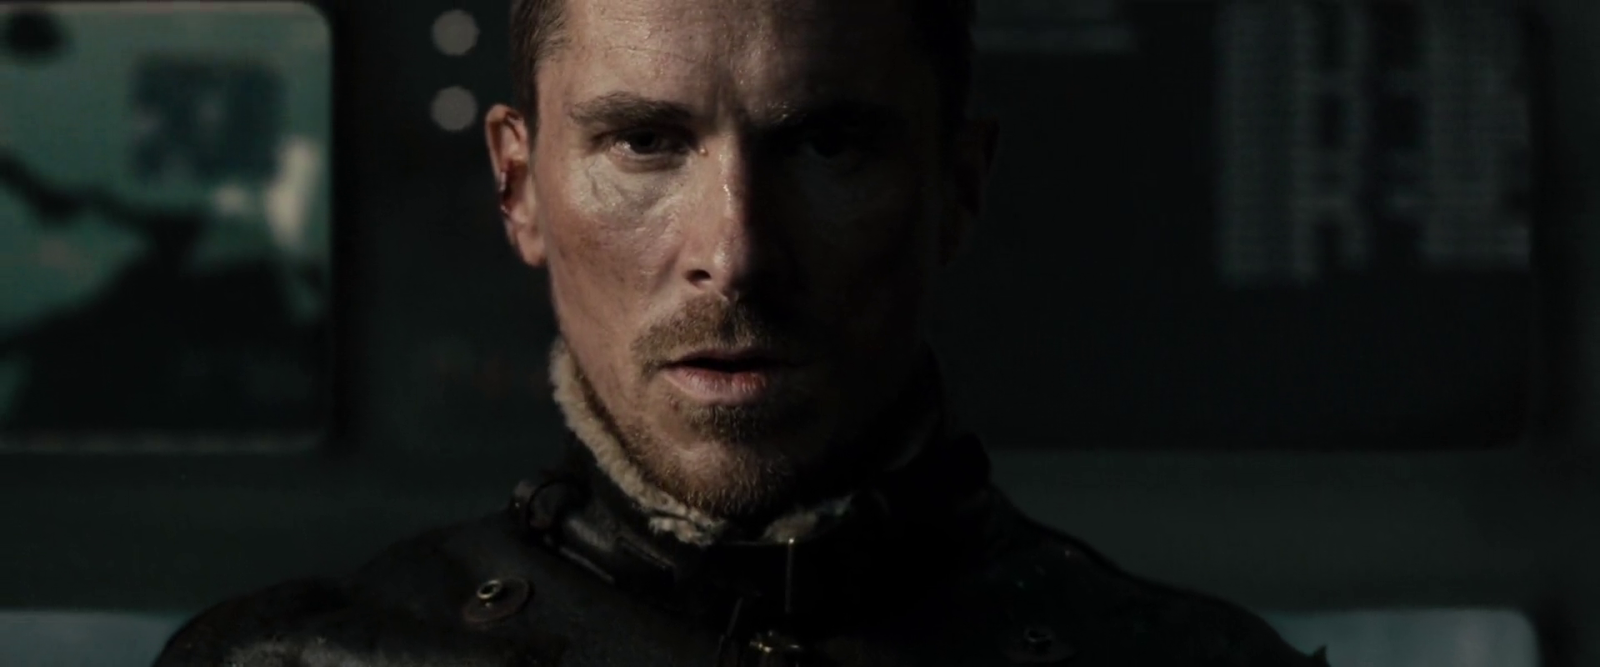 Christian Bale Terminator Salvation